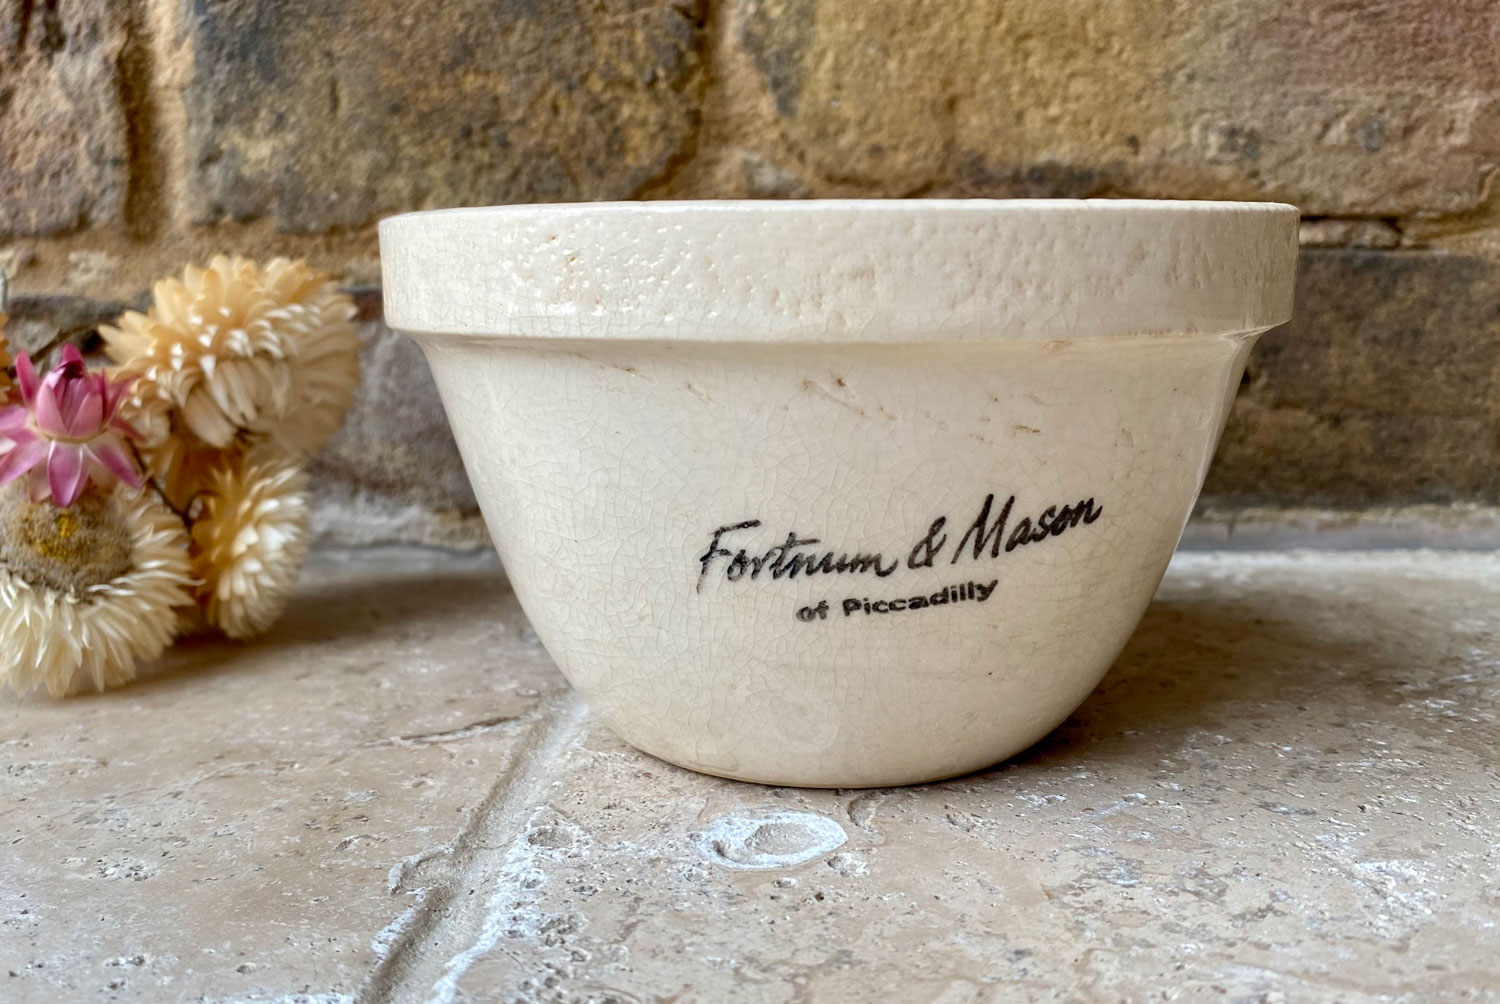 antique 1920s fortnums mason piccadilly advertising pudding bowl or basin